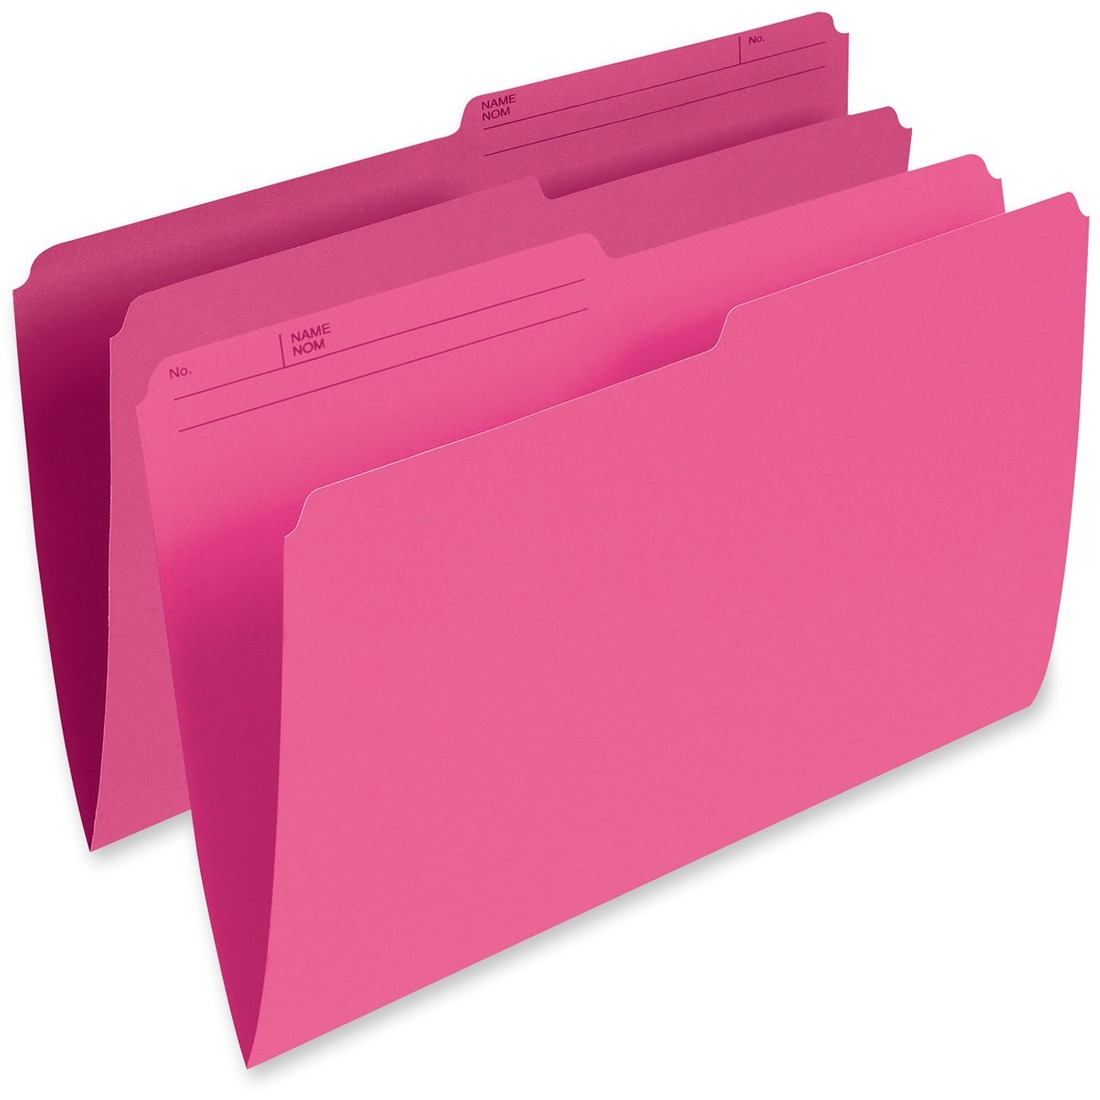 west coast office supplies office supplies filing With best document folder